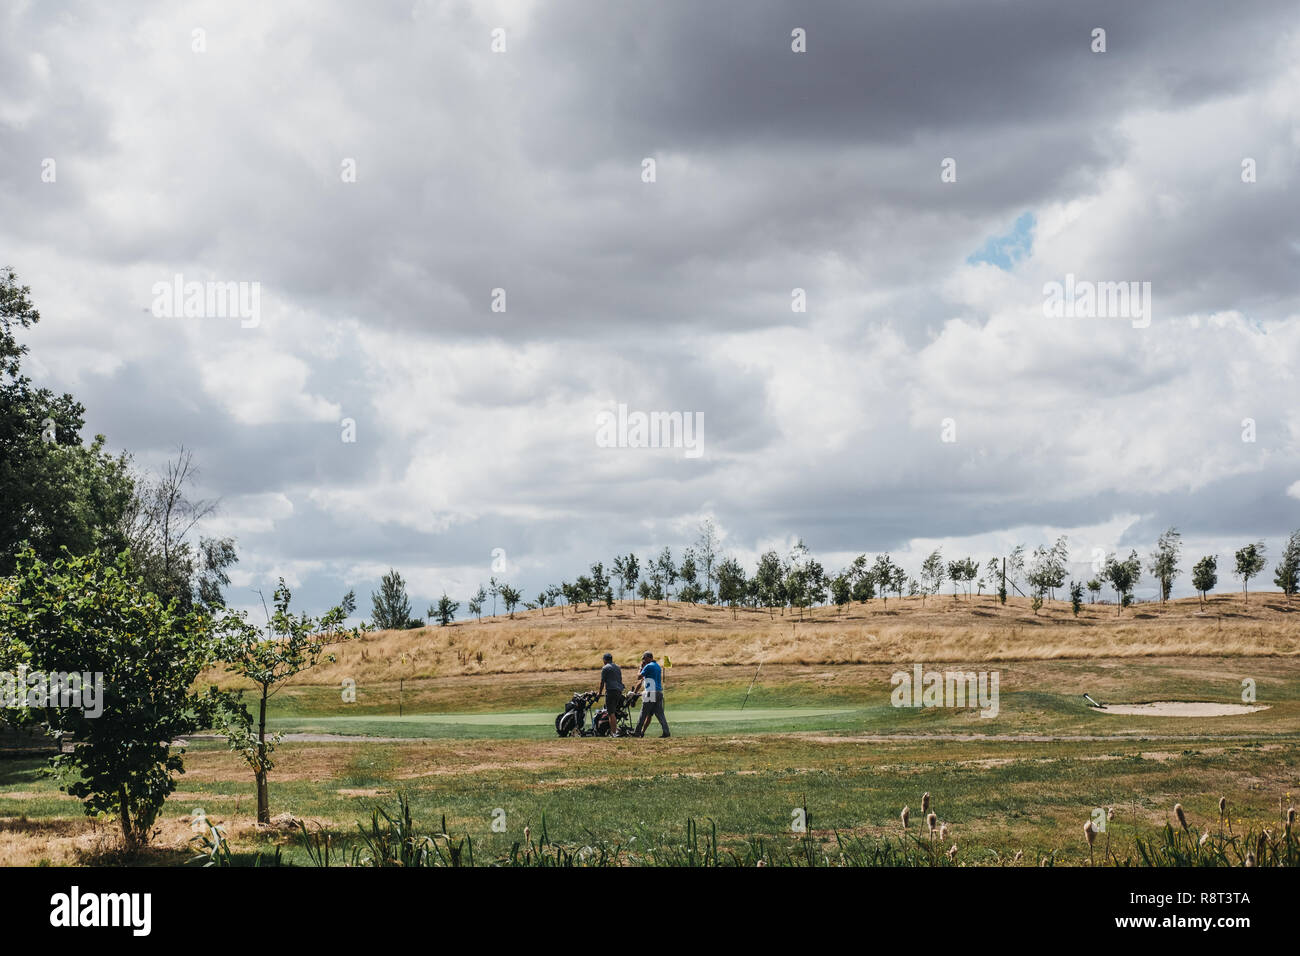 Leicester, UK - July 28, 2018: Two golfers with golf buggies walking across the pitch on the golf course. Golf is a popular sport and leisure activity - Stock Image